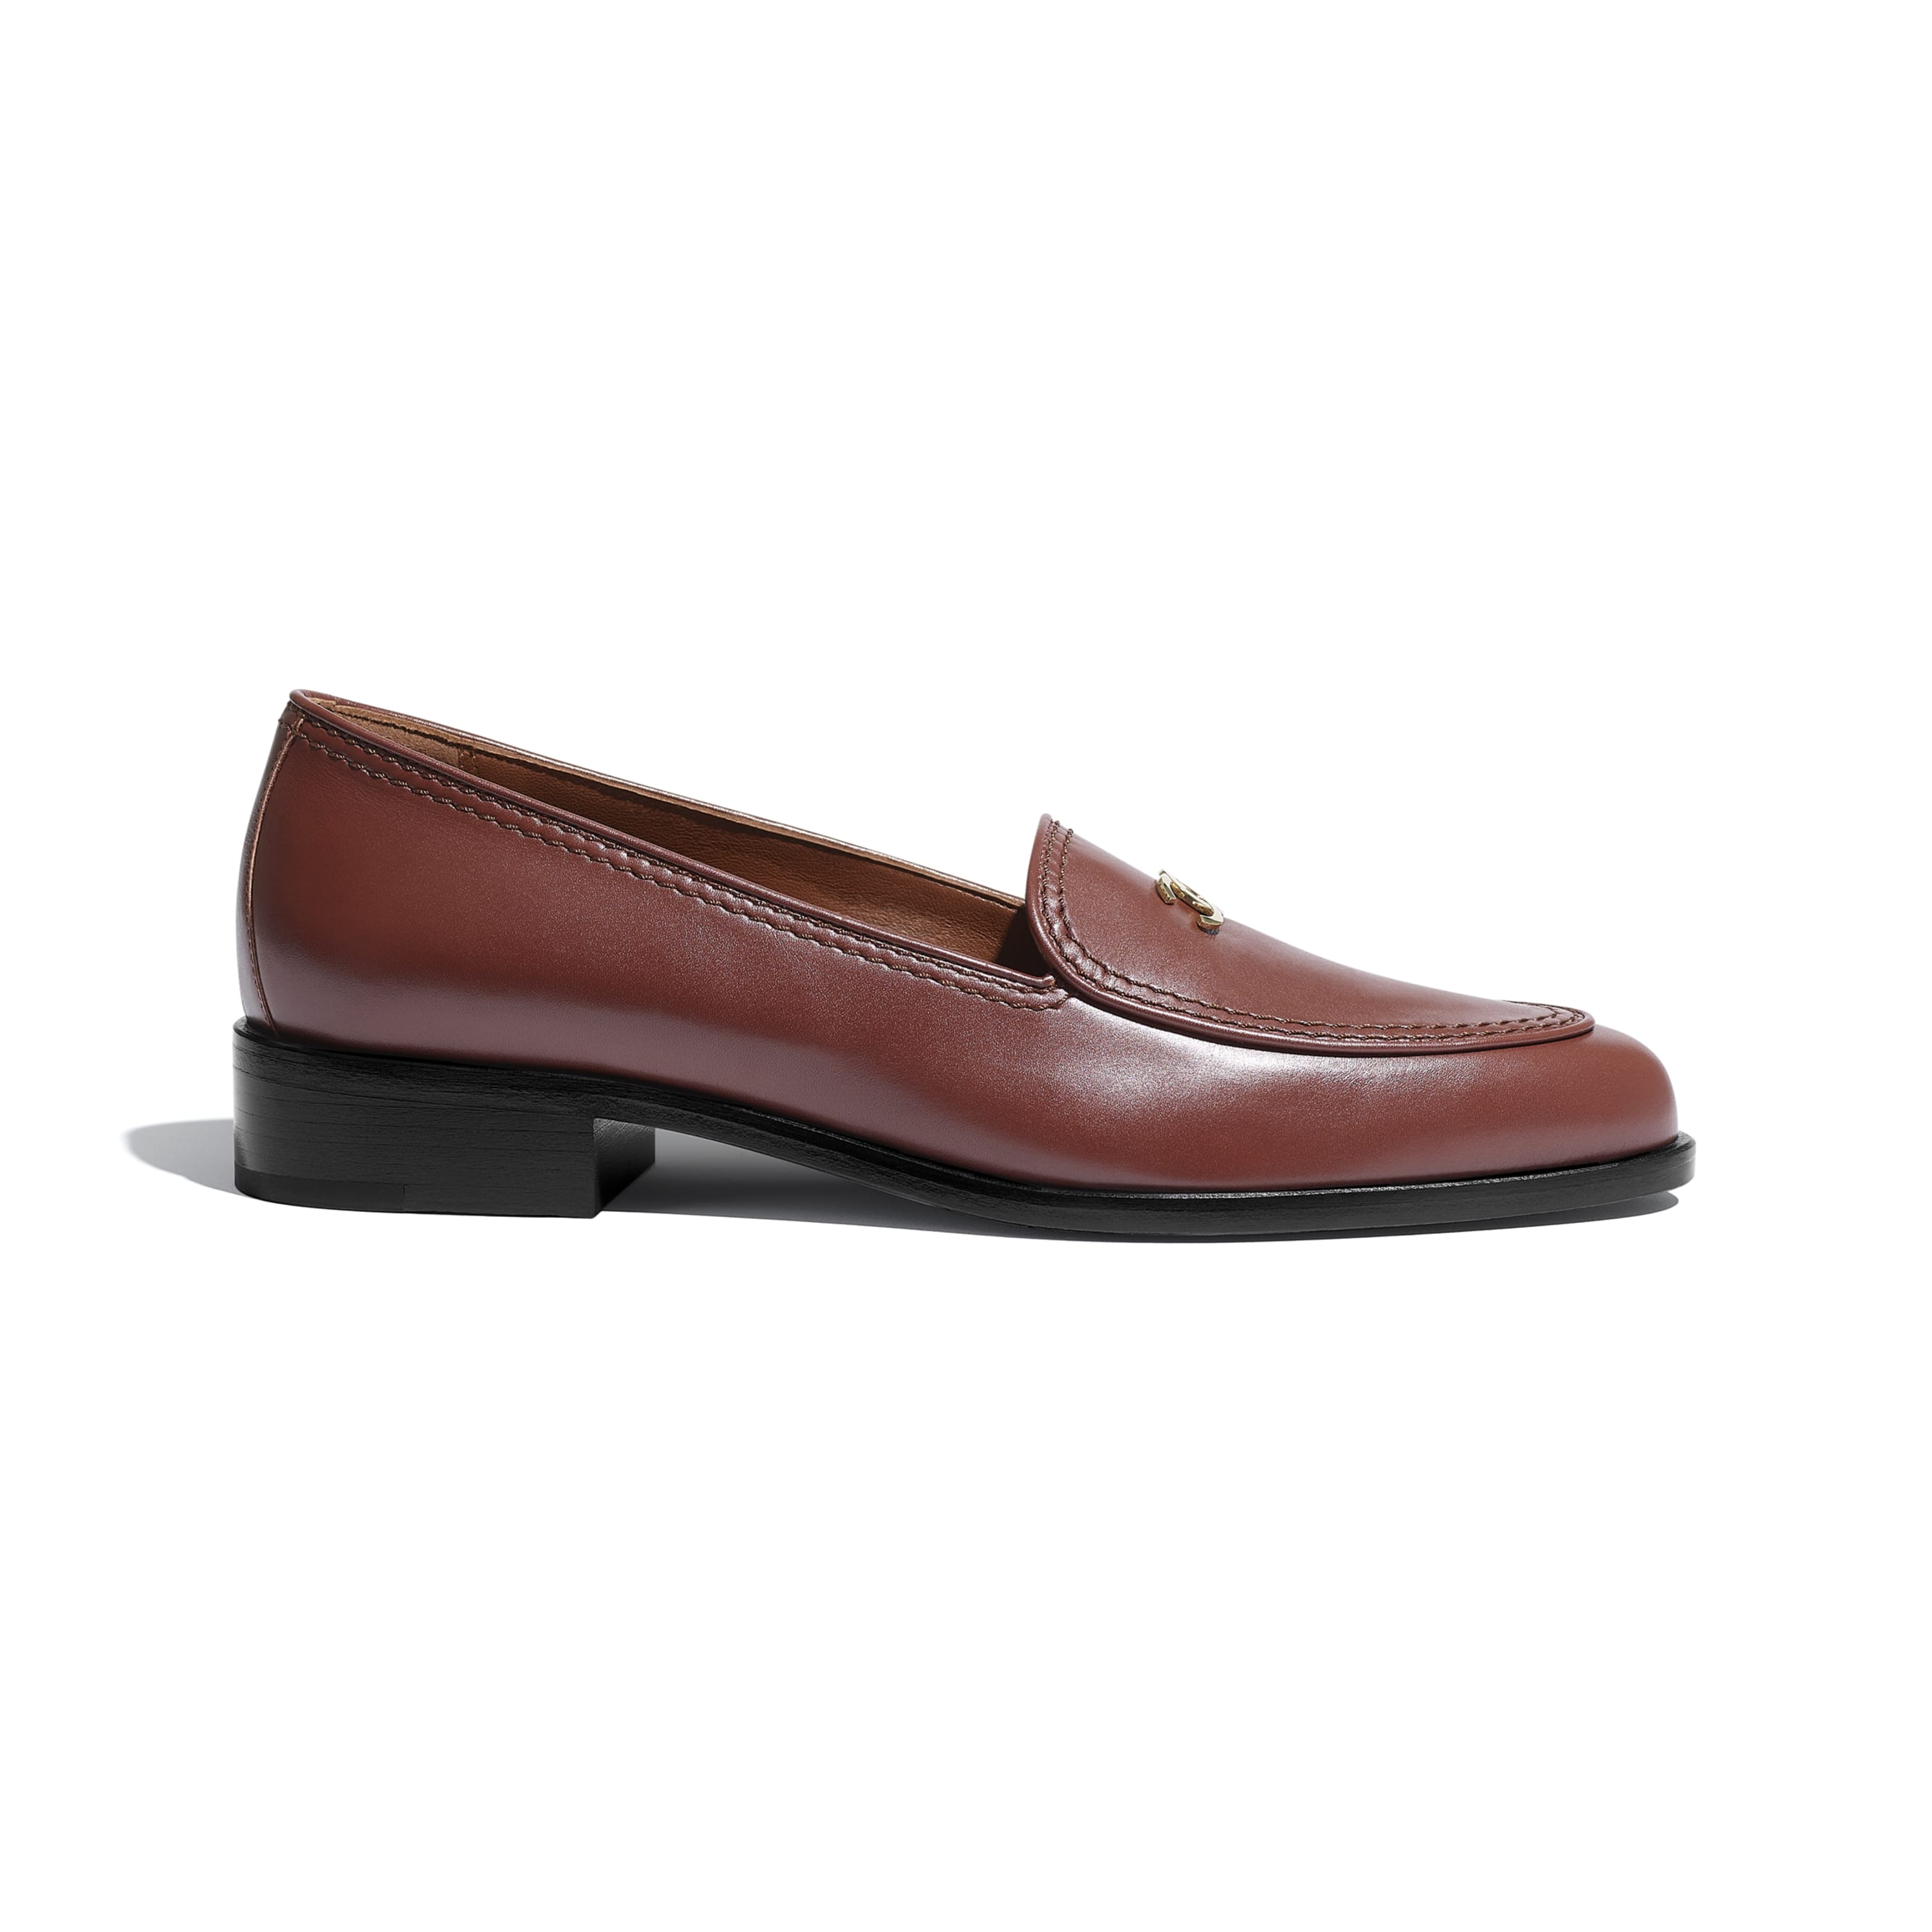 Loafers - Brown - Calfskin - CHANEL - Default view - see standard sized version